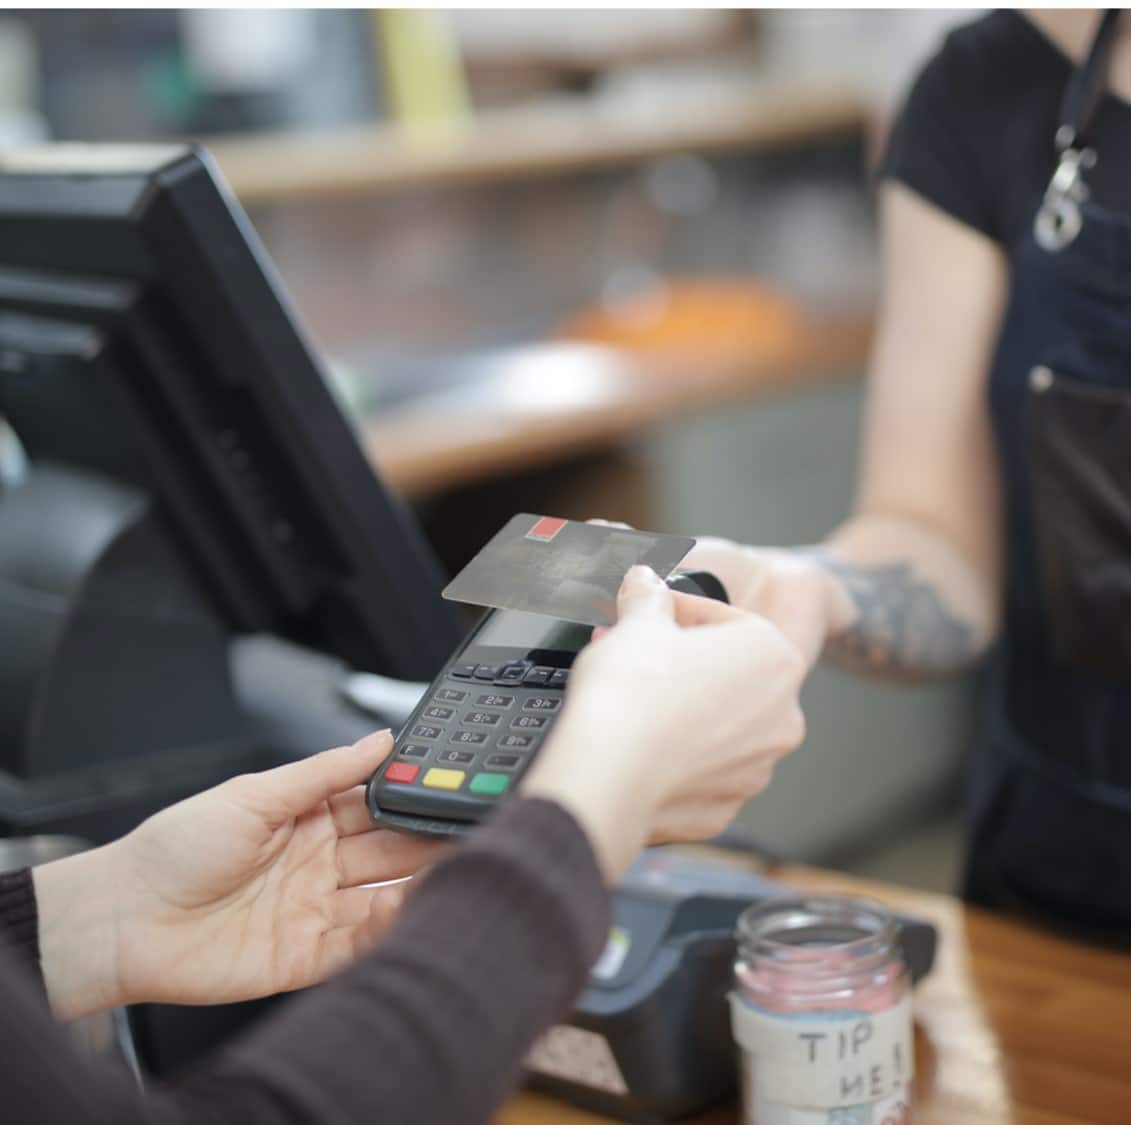 Payment processing machine in a retail setting powered by IoT cellular connectivity